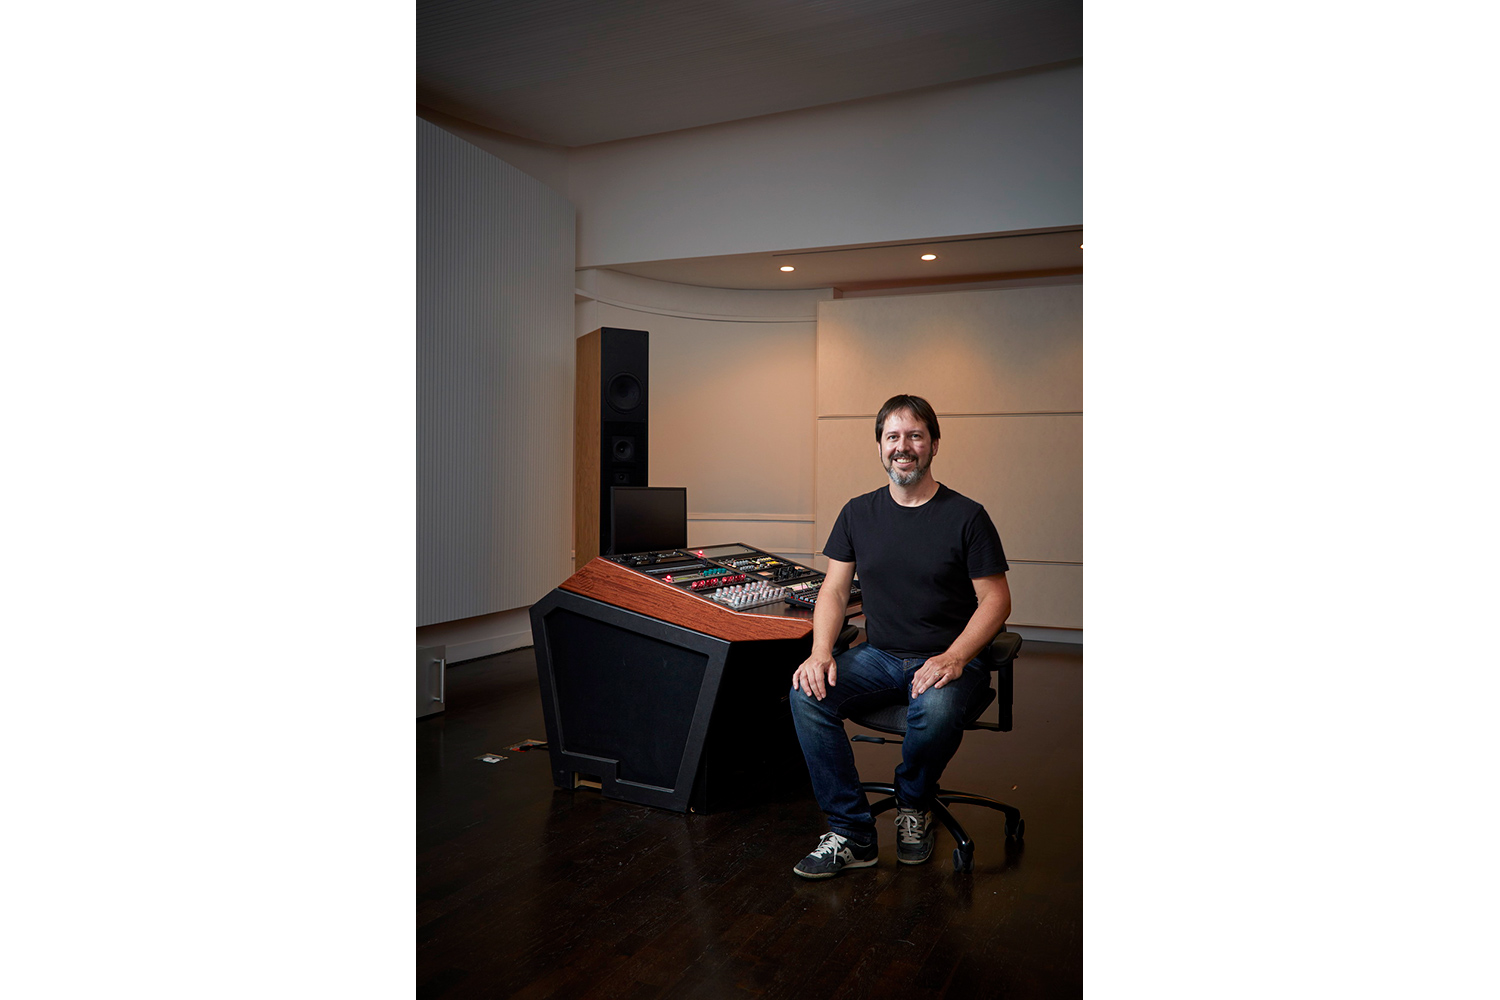 Top mastering engineer and Boiler Room founder Collin Jordan inquired WSDG to fully design his new mastering room in Chicago. WSDG's balance of technical acoustics and artistic design was spot on and made it easy to make the decision. Collin Jordan at his Mastering Studio.